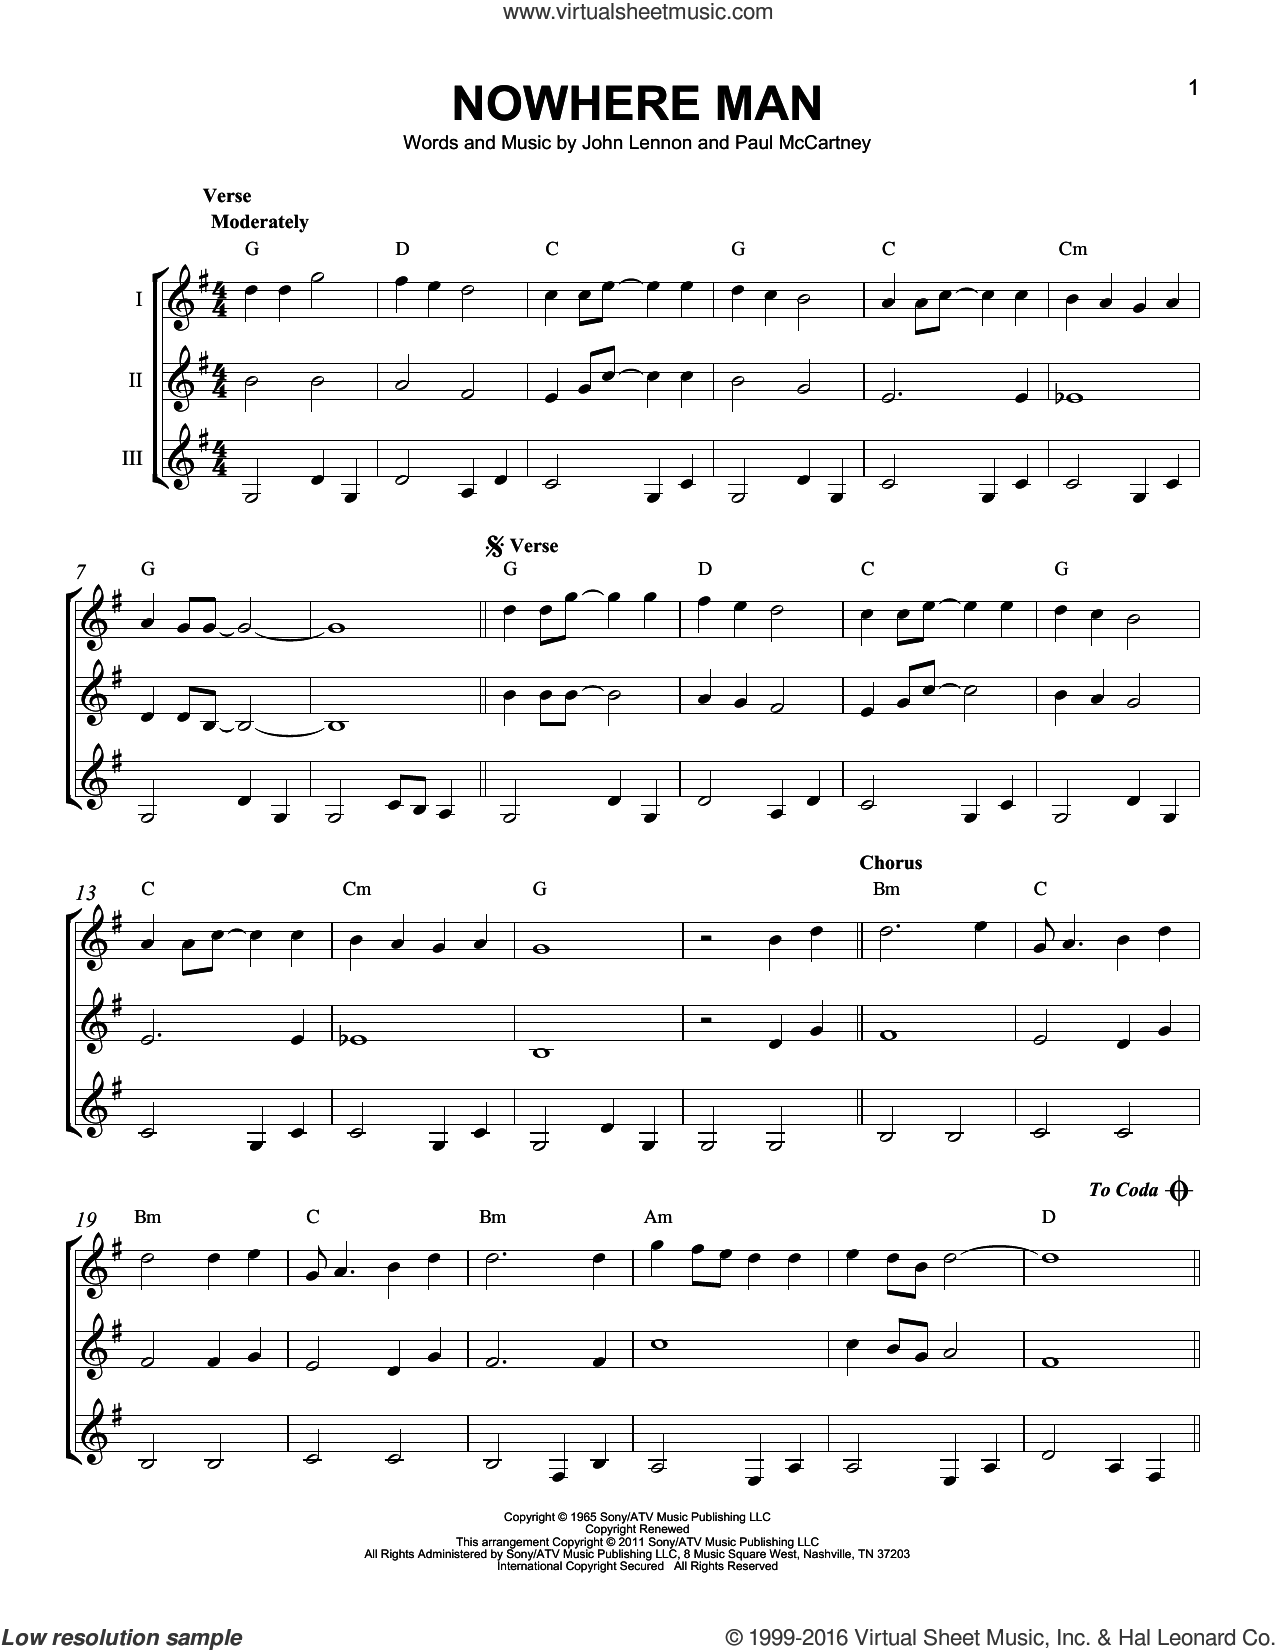 Nowhere Man sheet music for guitar ensemble by Paul McCartney, The Beatles and John Lennon. Score Image Preview.